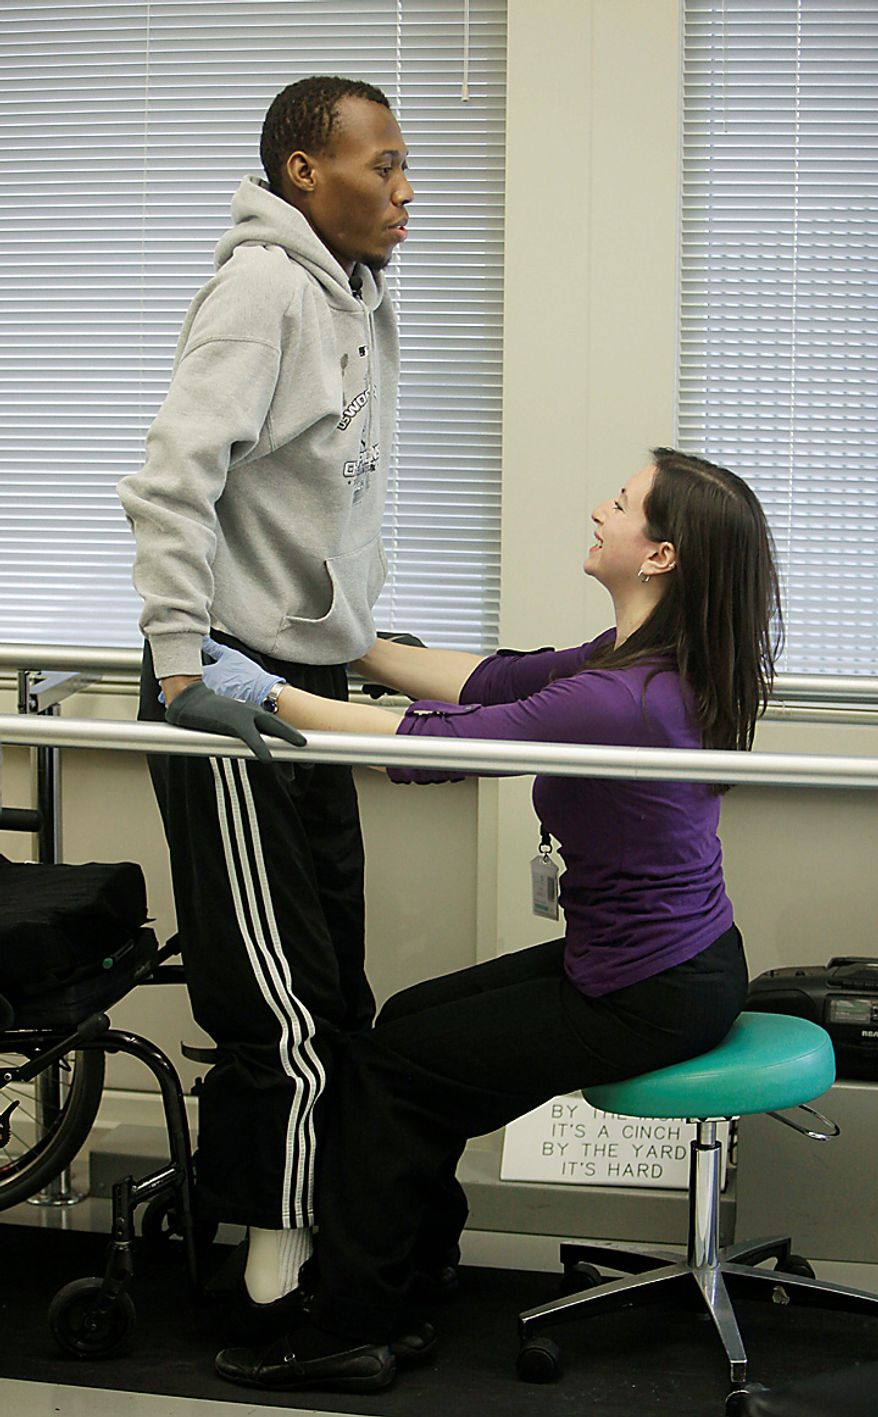 In this photo taken Feb. 24, 2010, a therapist helps Bazelais Suy stand with parallel bars at the Rehabilitation Institute of Chicago while recovering from surgery to repair his shattered spine. Suy is a Haitian student activist whose spine was crushed when a university building collapsed in Haiti's catastrophic earthquake last January. He was airlifted to Chicago for six months of intensive rehabilitation and recently returned to Haiti with hopes of helping rebuild the country. (AP Photo/M. Spencer Green)